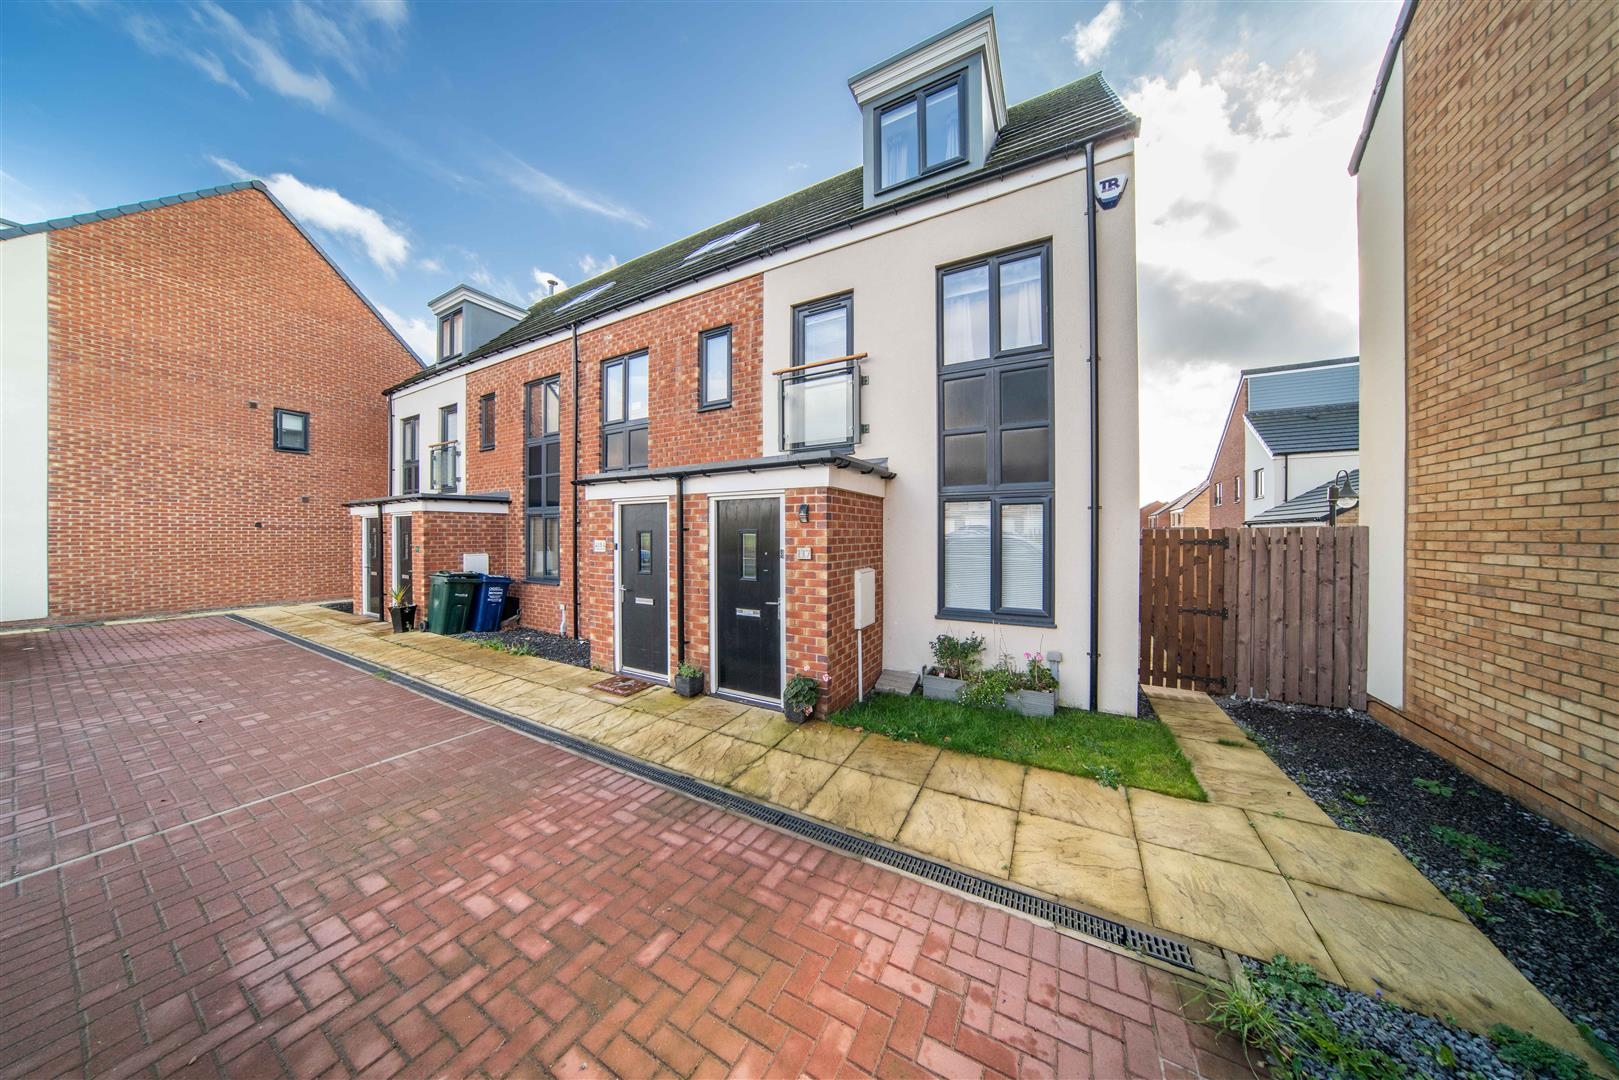 3 bed town house for sale in Newcastle Upon Tyne, NE13 9BD, NE13